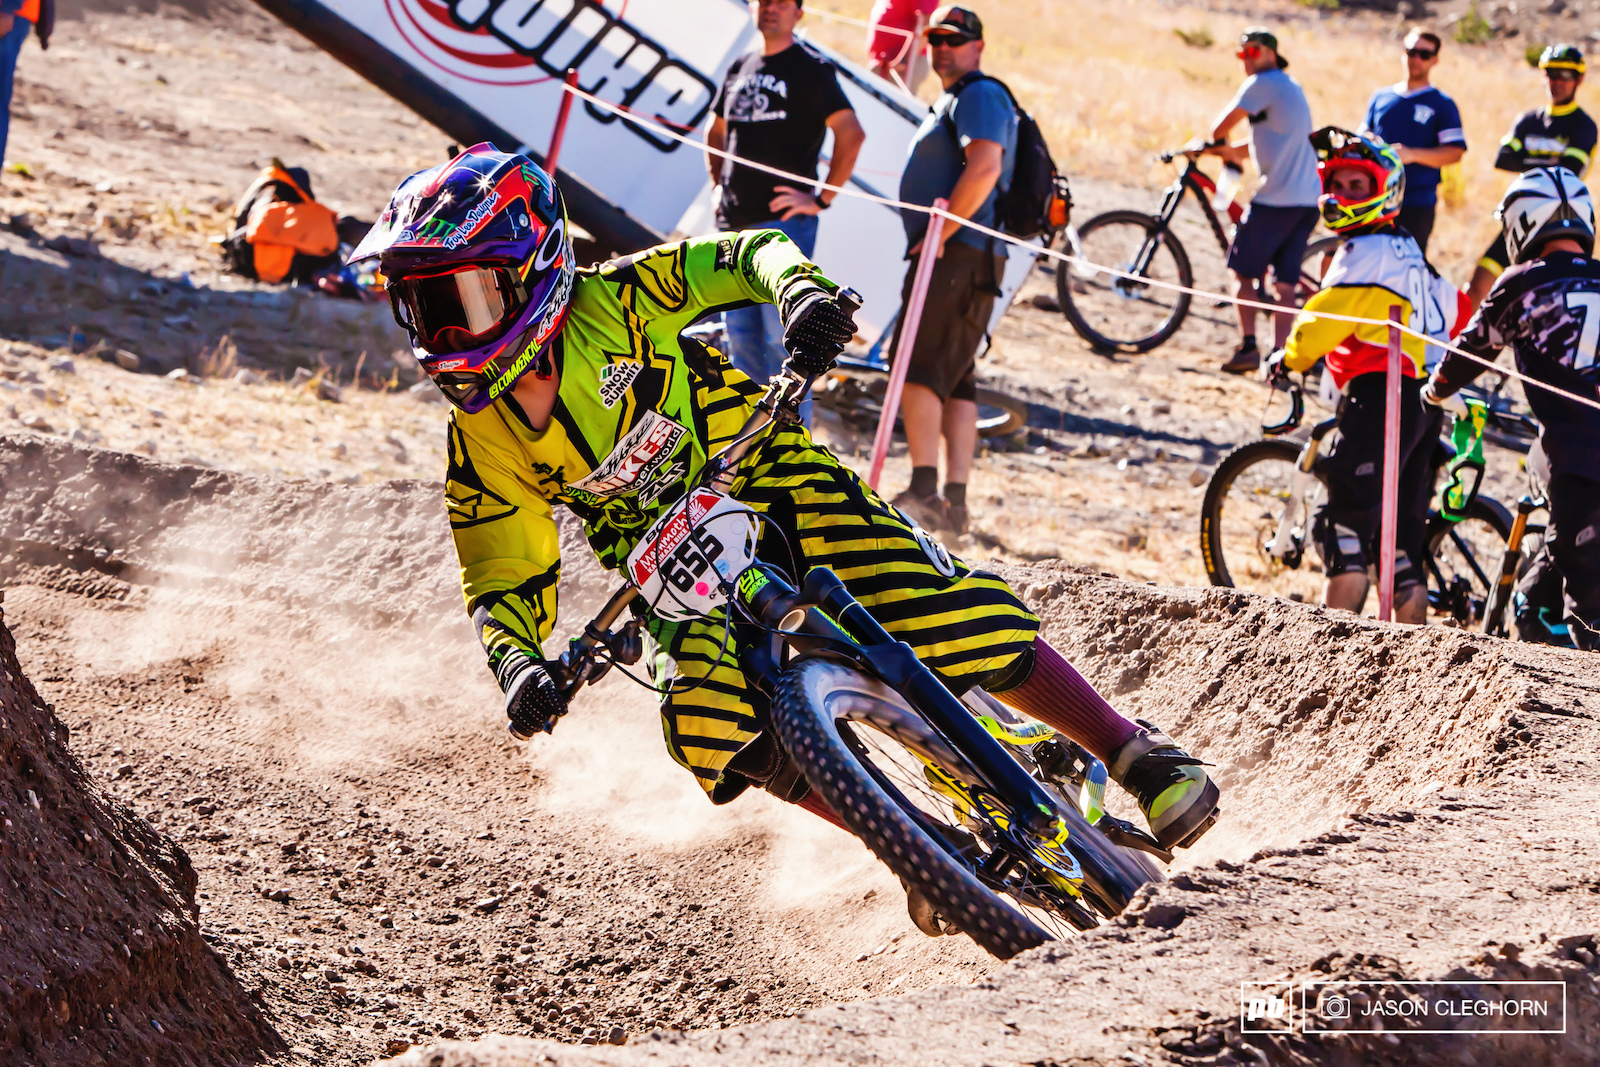 National Dual Slalom champ Myrie Metzger looking faster than ever